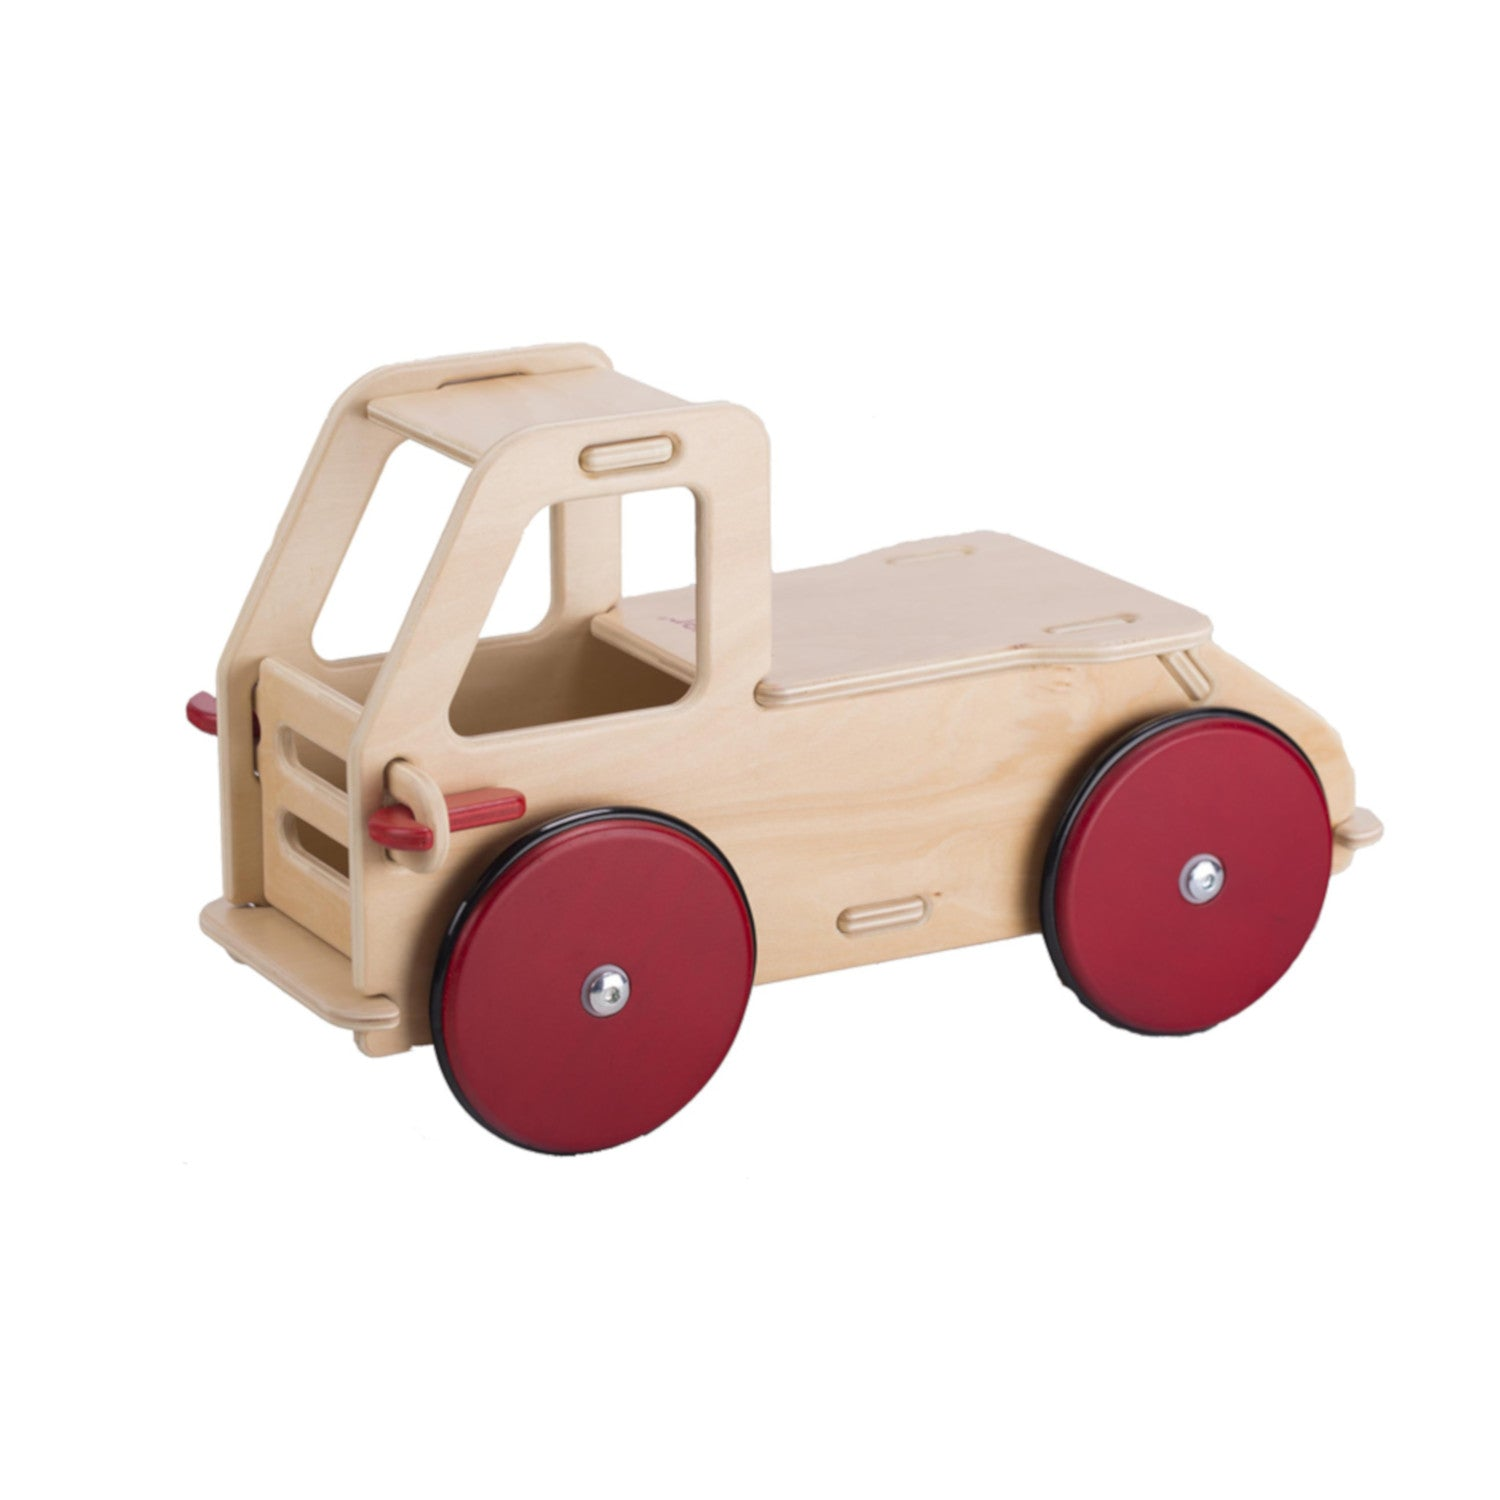 Moover baby truck natural with red wheels wooden ride-on toddler ride-on